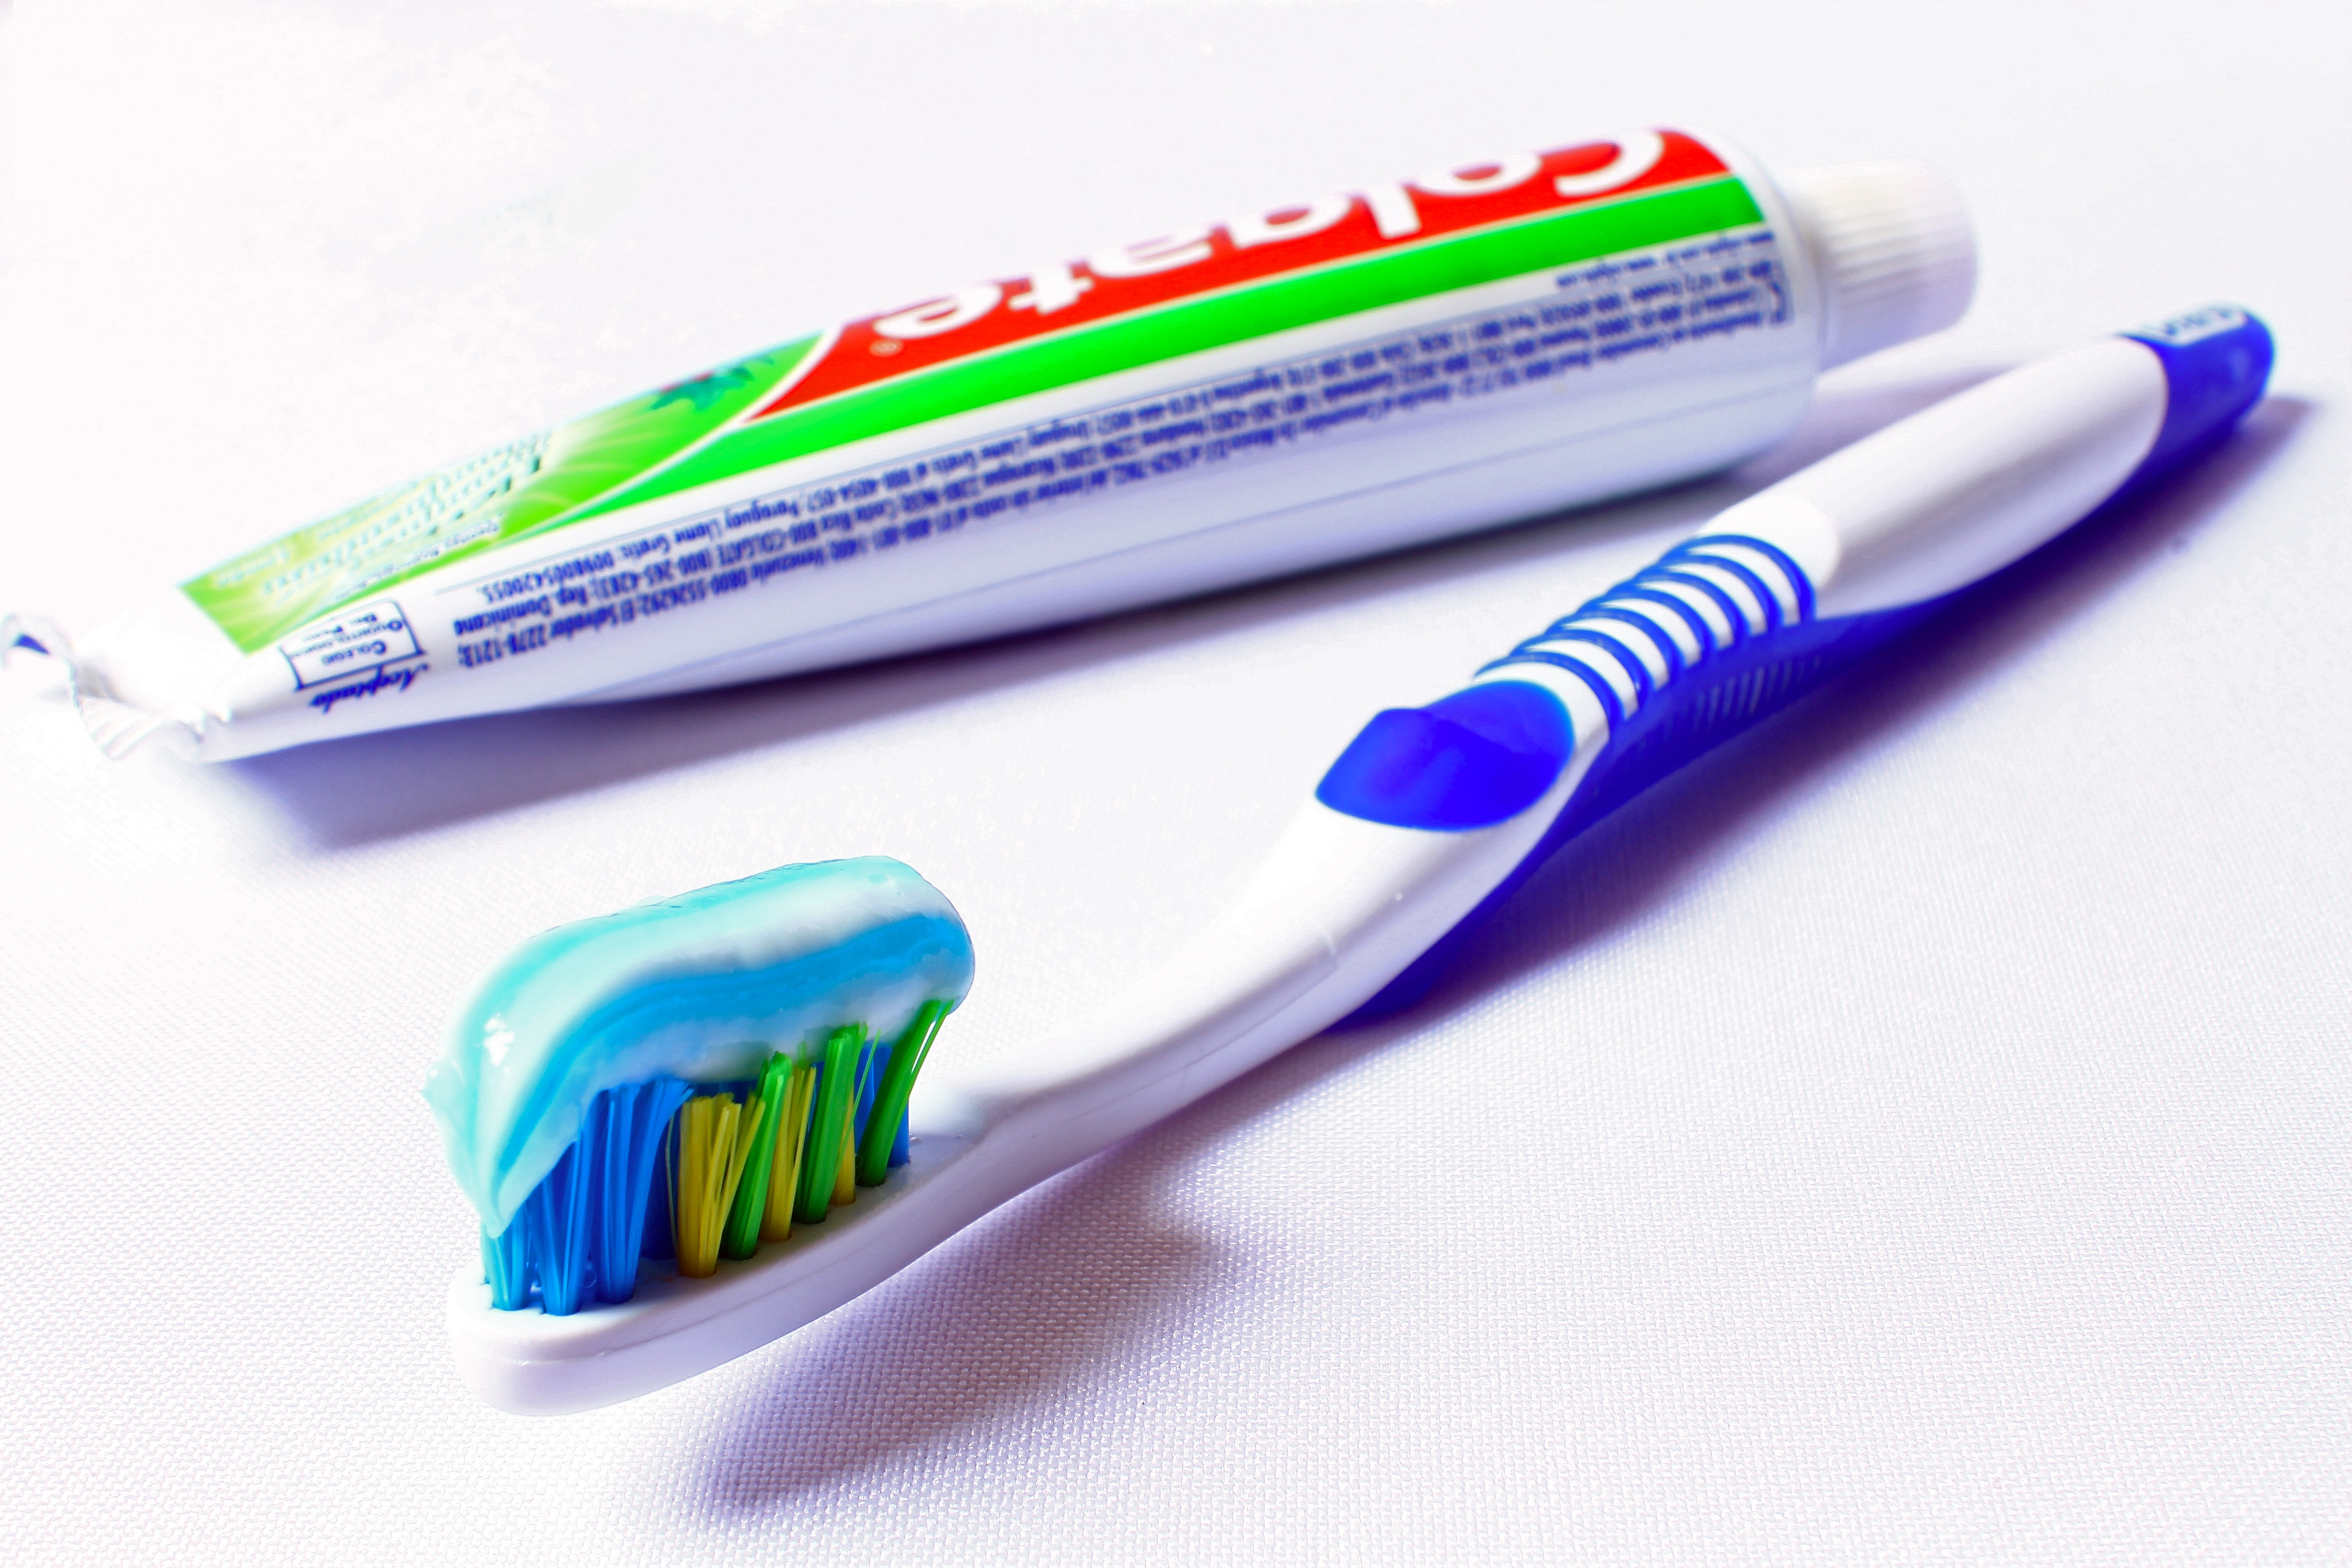 Free Images : brush, cleaning, tooth, toothbrush, toothpaste, oral ...